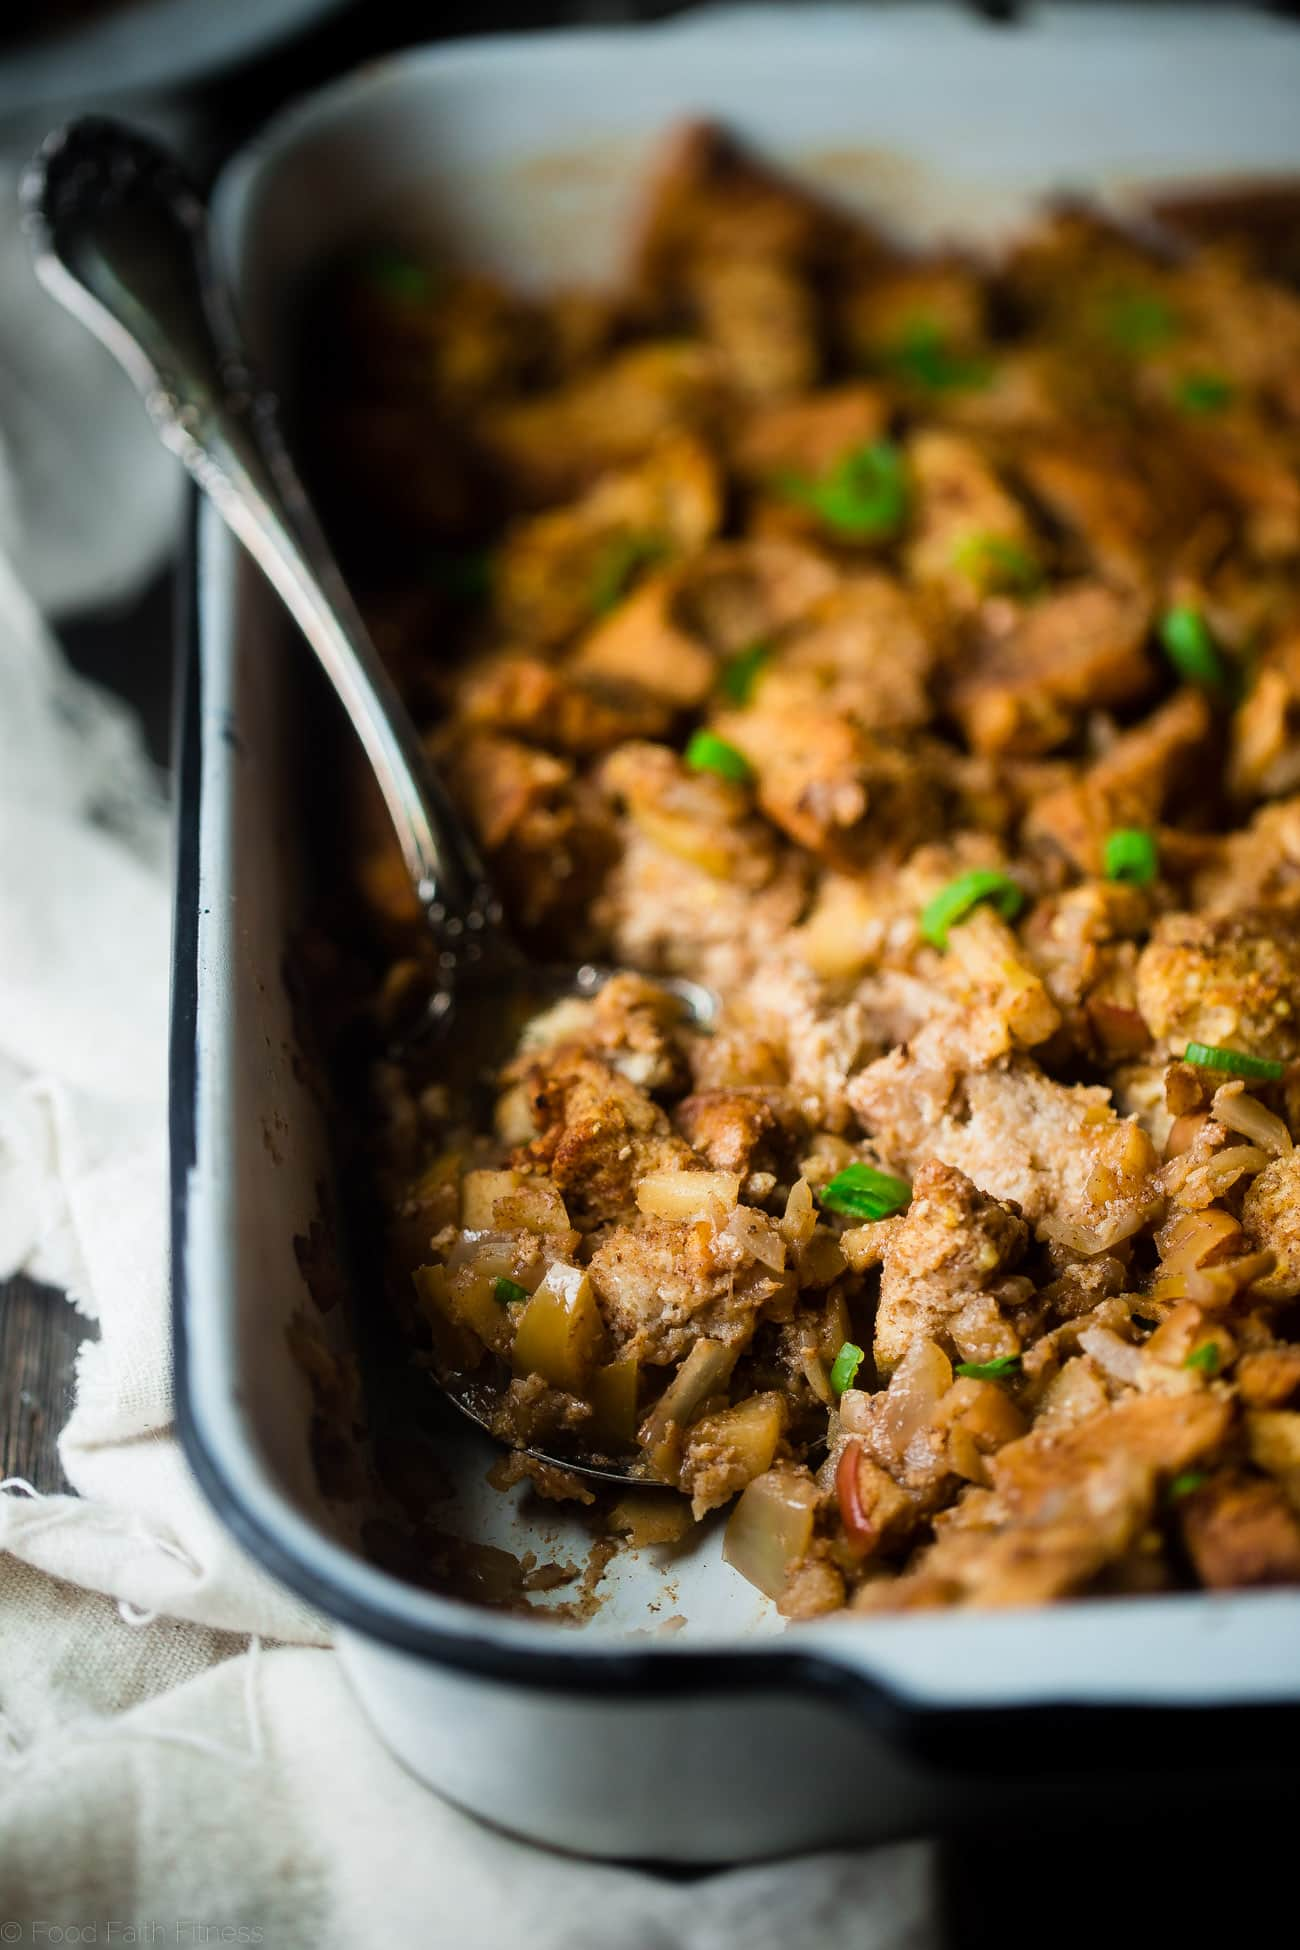 Gluten Free Apple Raisin Stuffing - This easy, gluten free stuffing is made from a mixture of bread and cinnamon raisin bagels! It's the perfect simple, healthy Thanksgiving side dish that everyone will love!   Foodfaithfitness.com   @FoodFaithFit